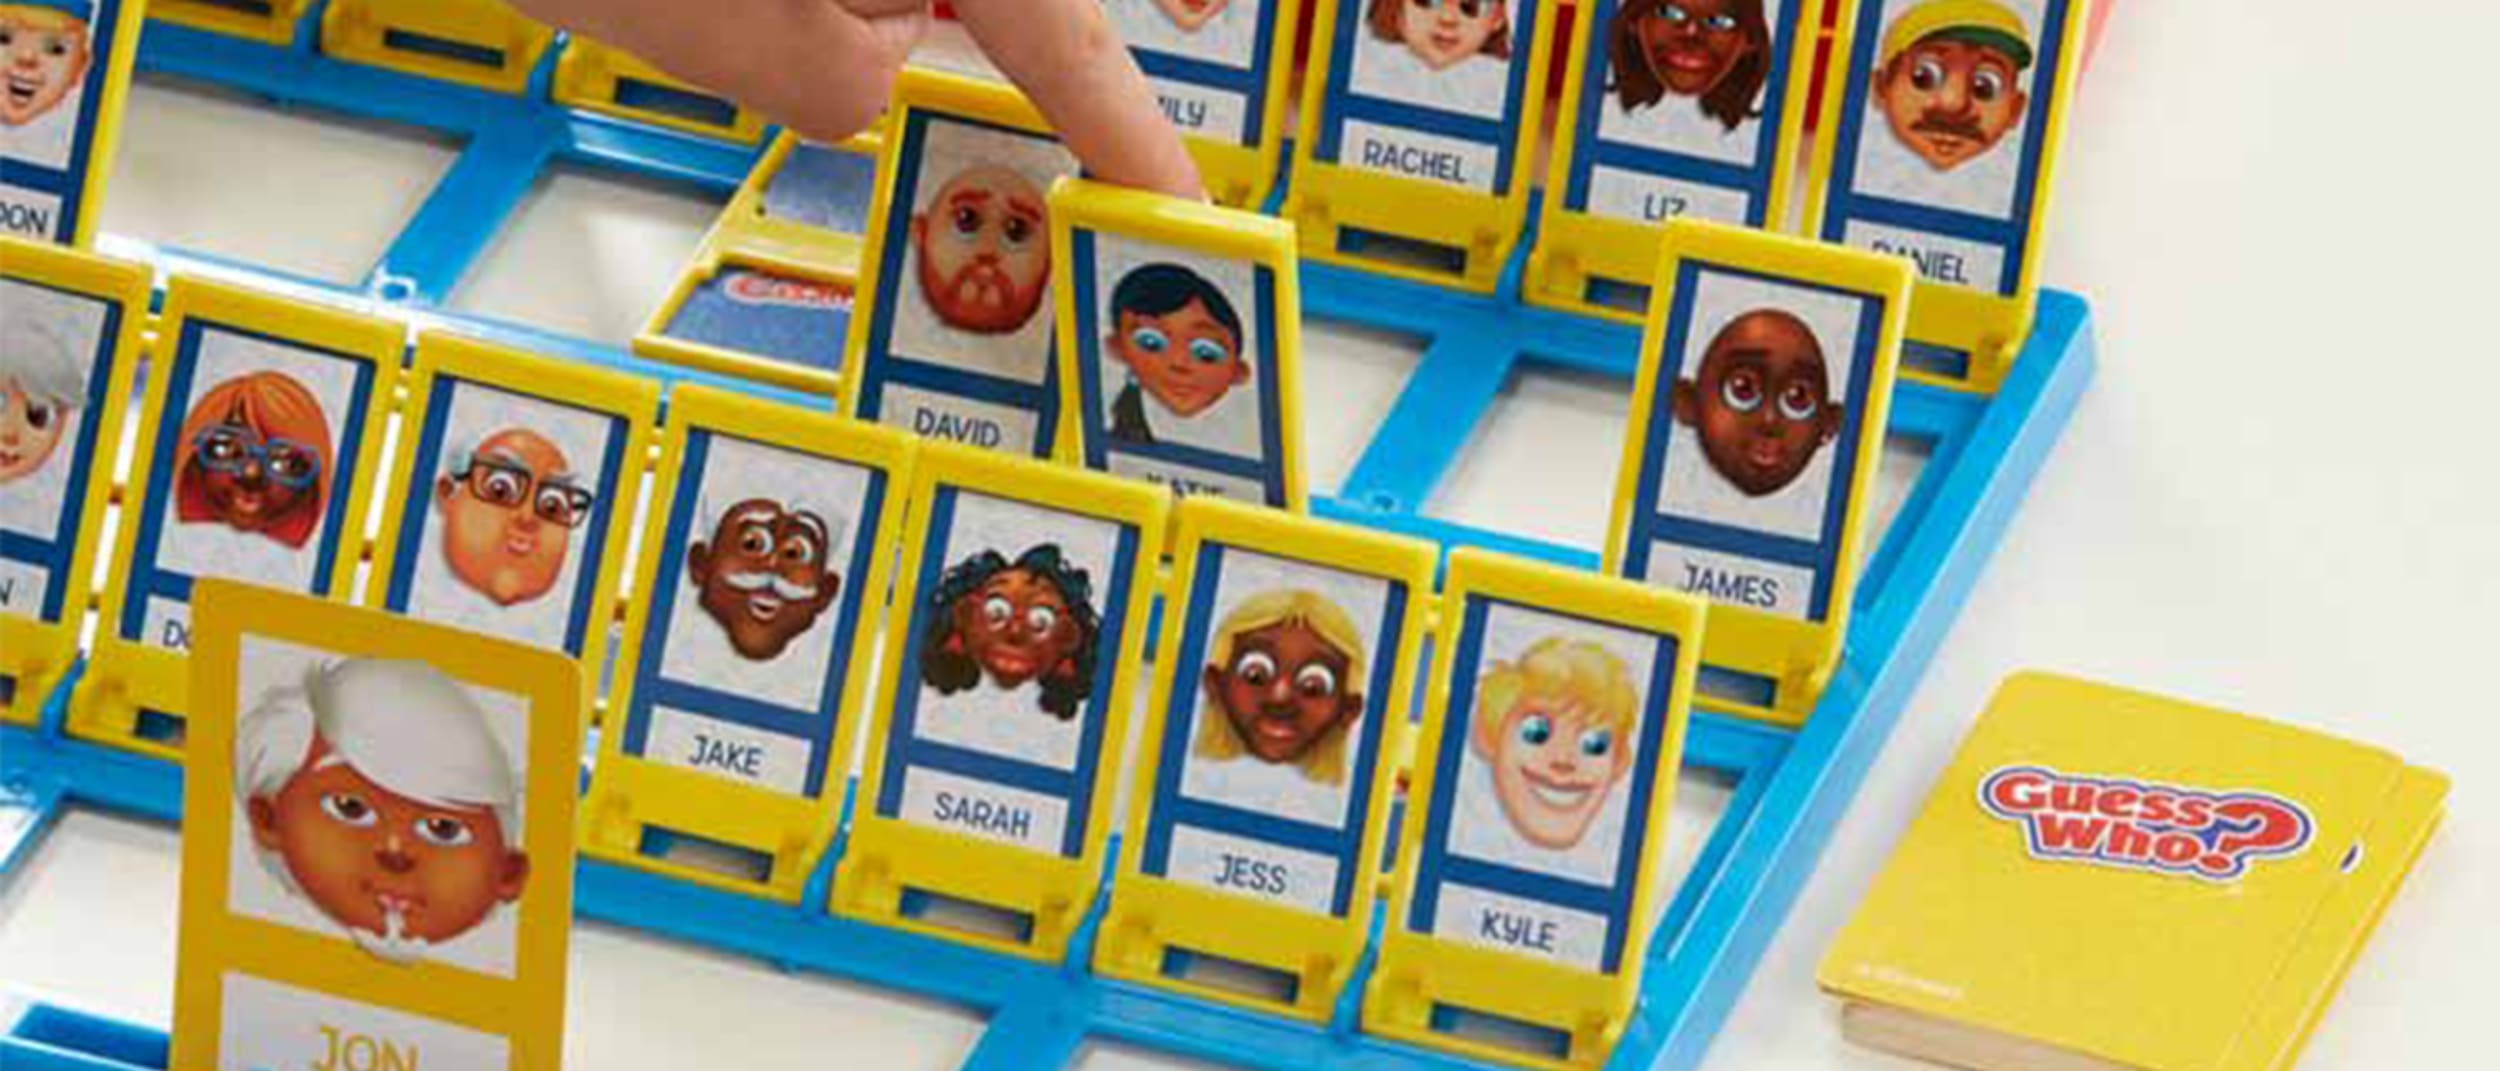 Taste. Shop. Play: Giant Guess Who